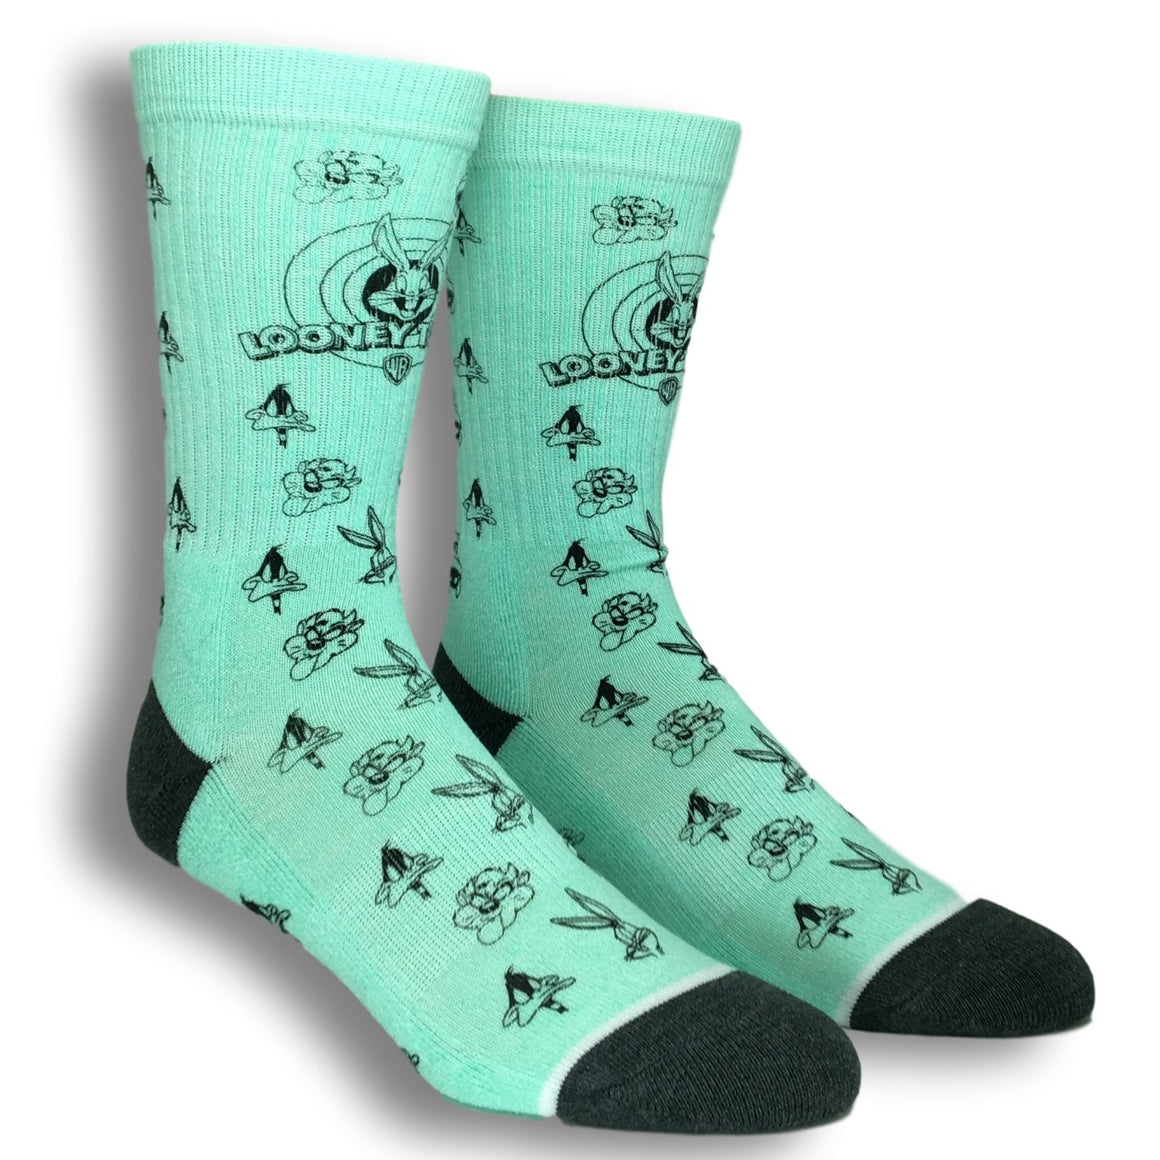 Socks - Looney Tunes  Waterprint Design Athletic Socks